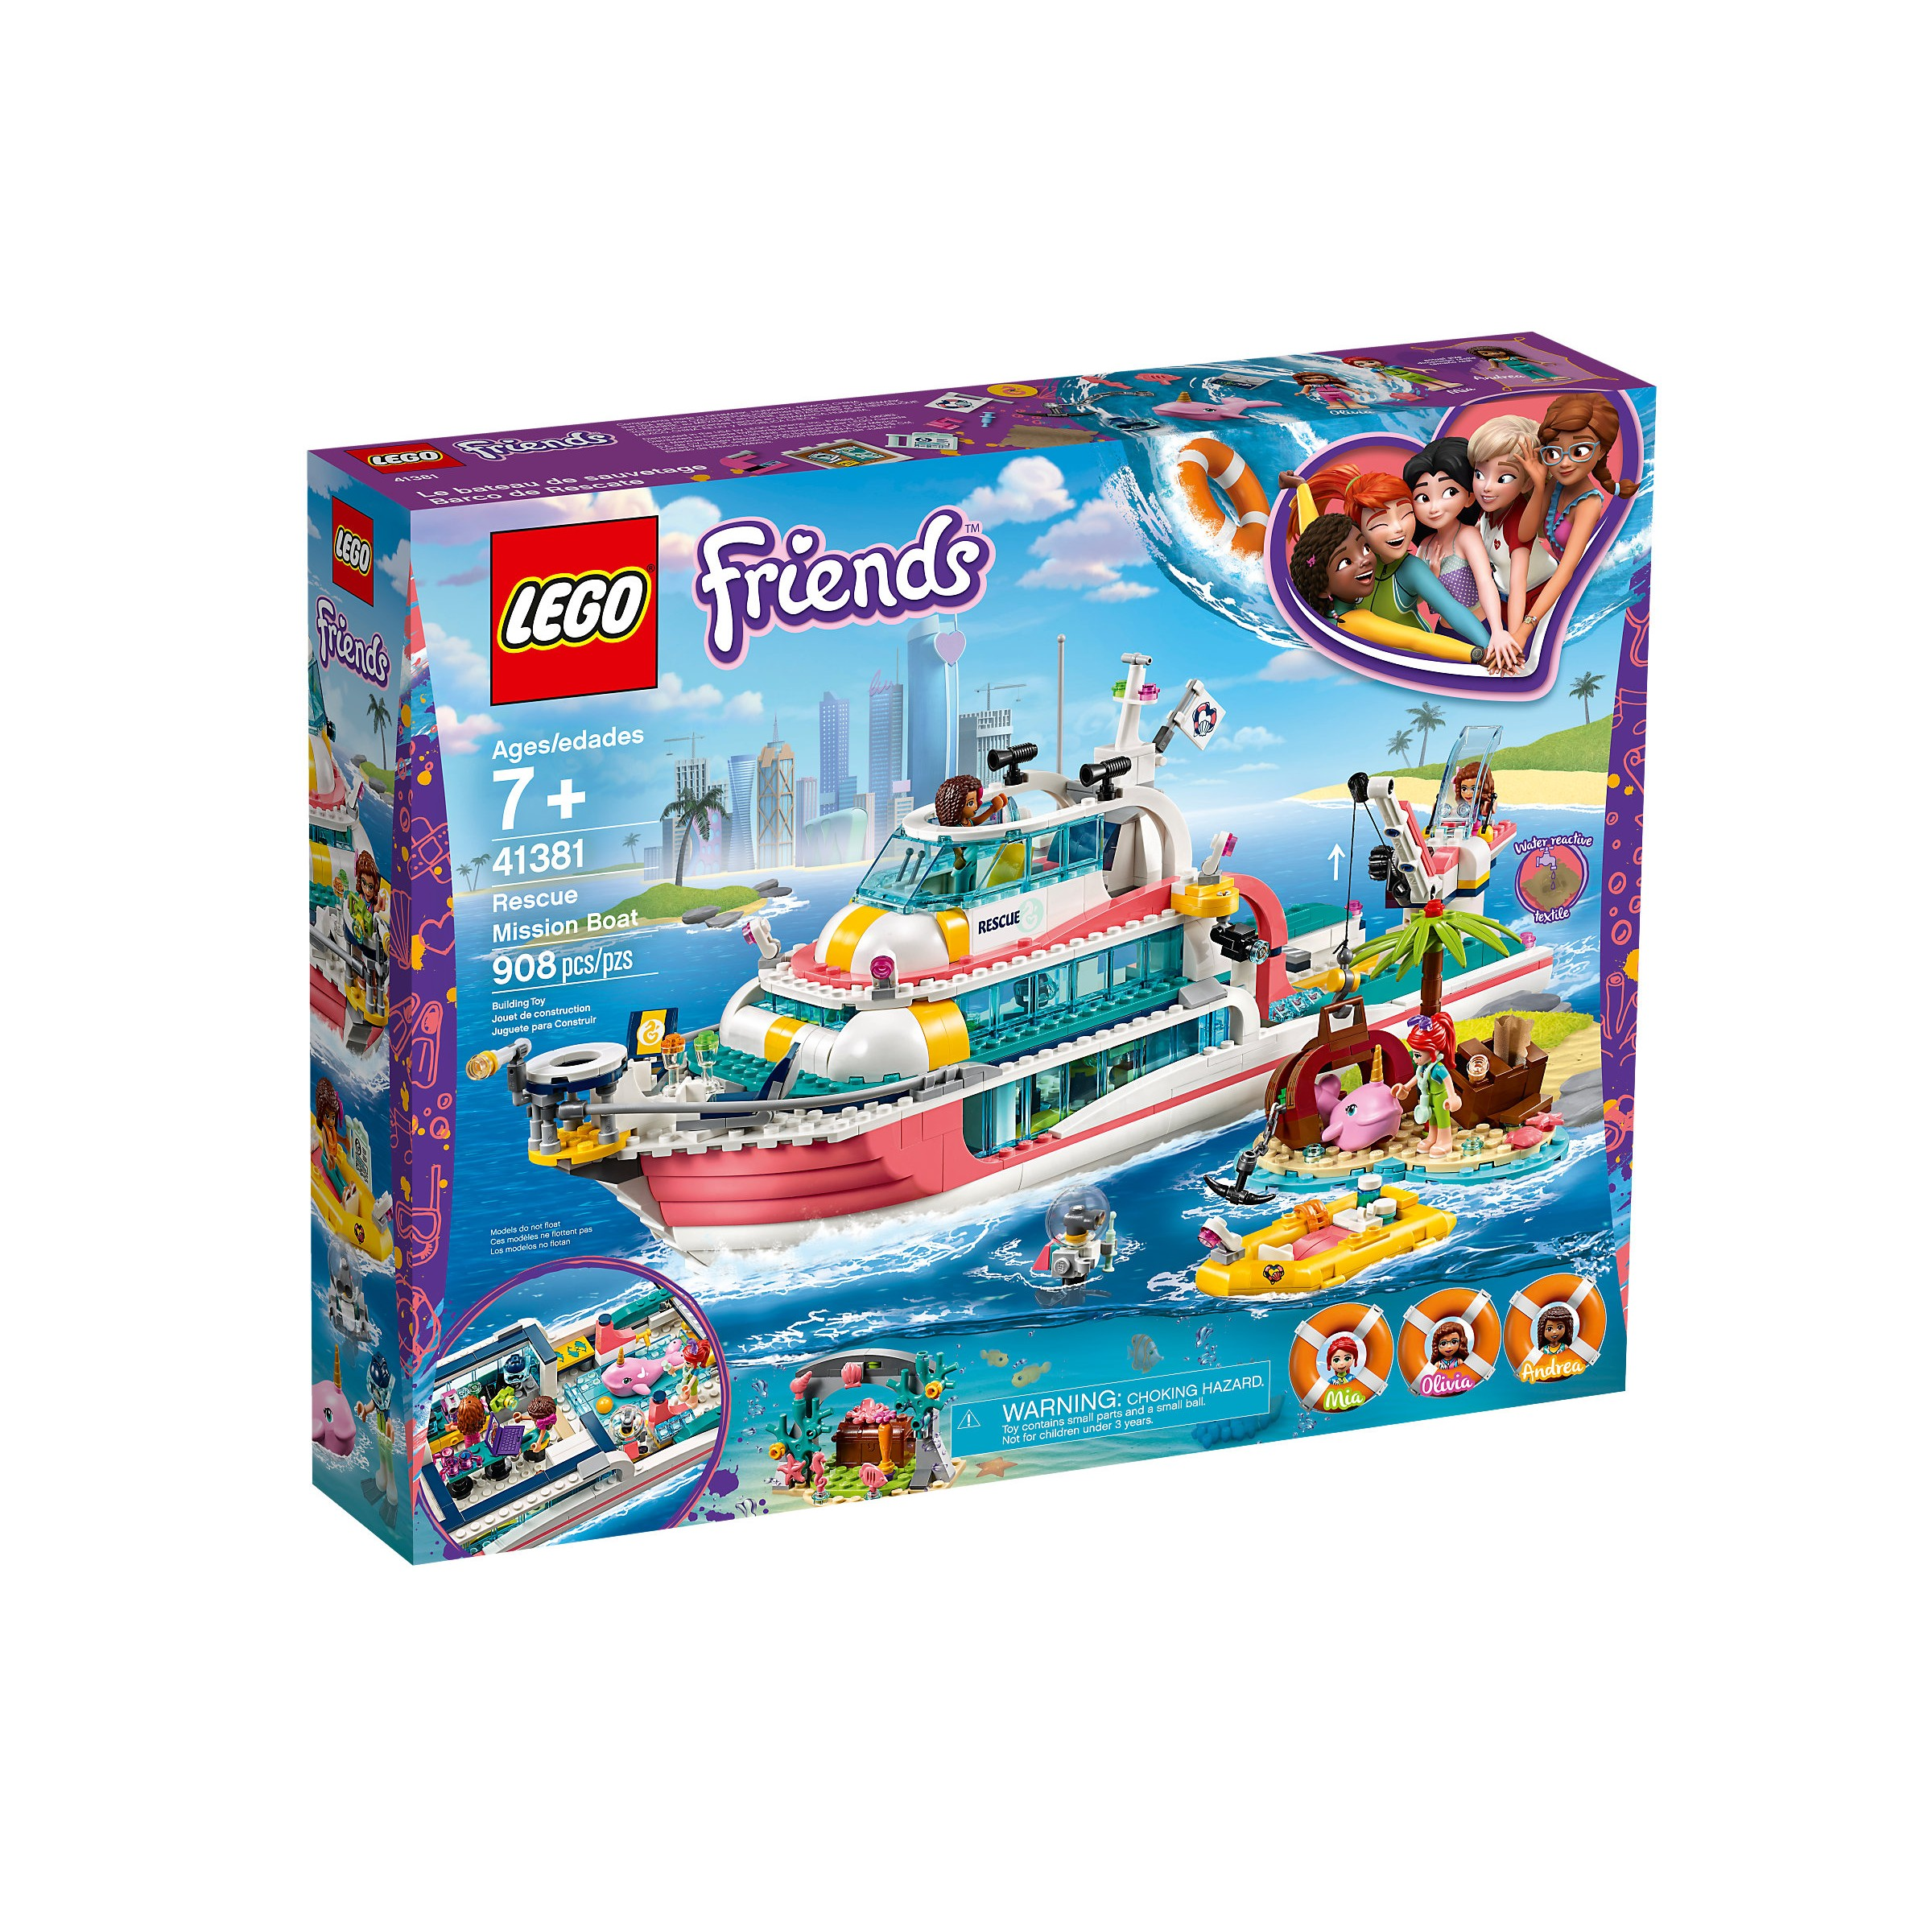 LEGO 41381 Friends Rescue Mission Boat at Toys R Us